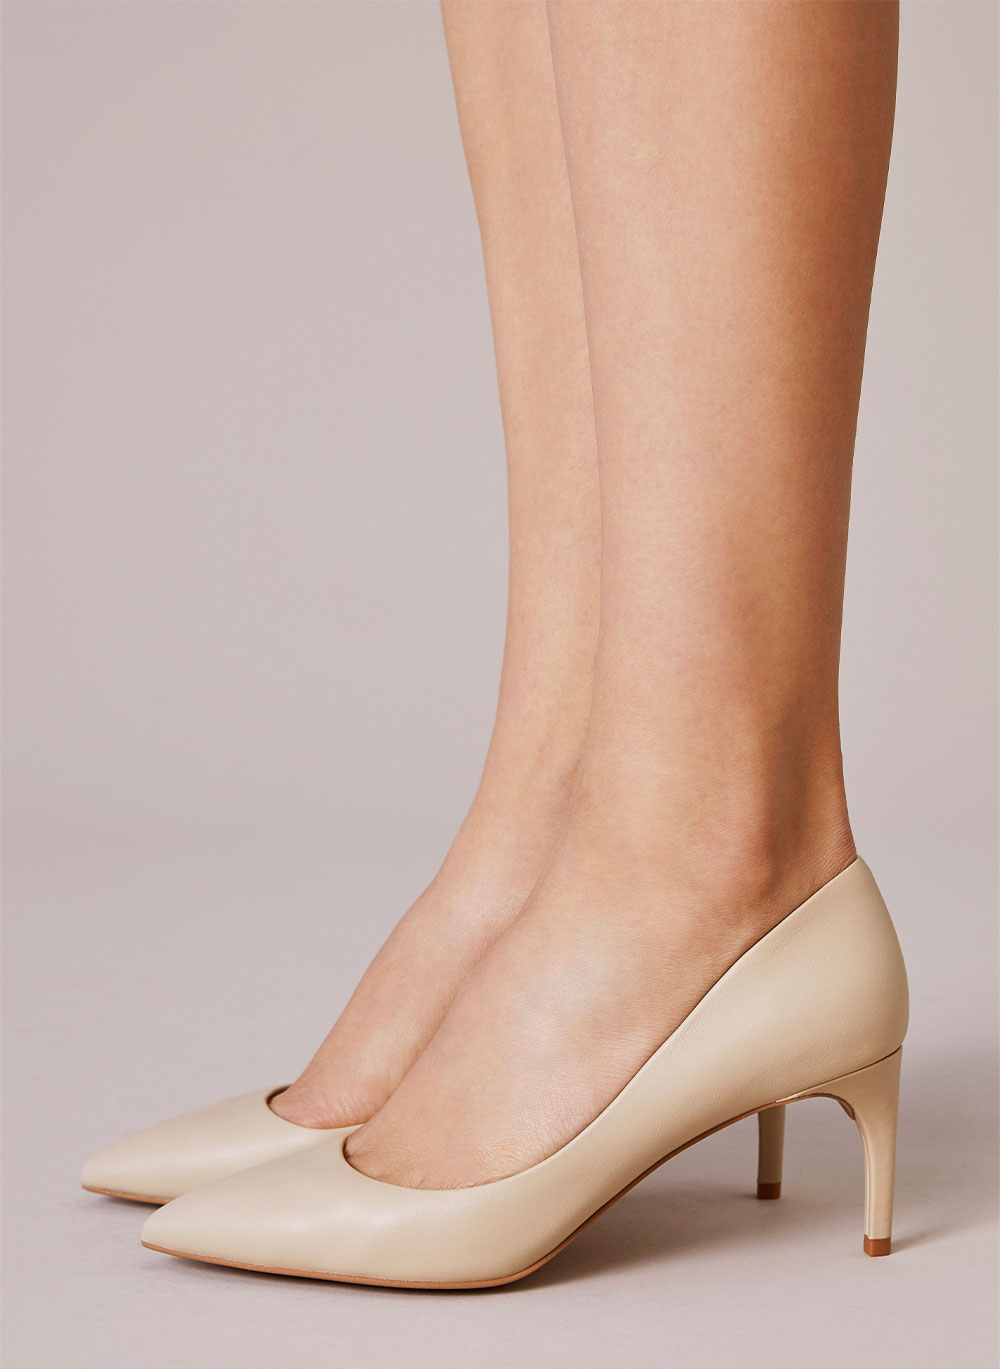 The essentials of the shoe wardrobe: nude shoes